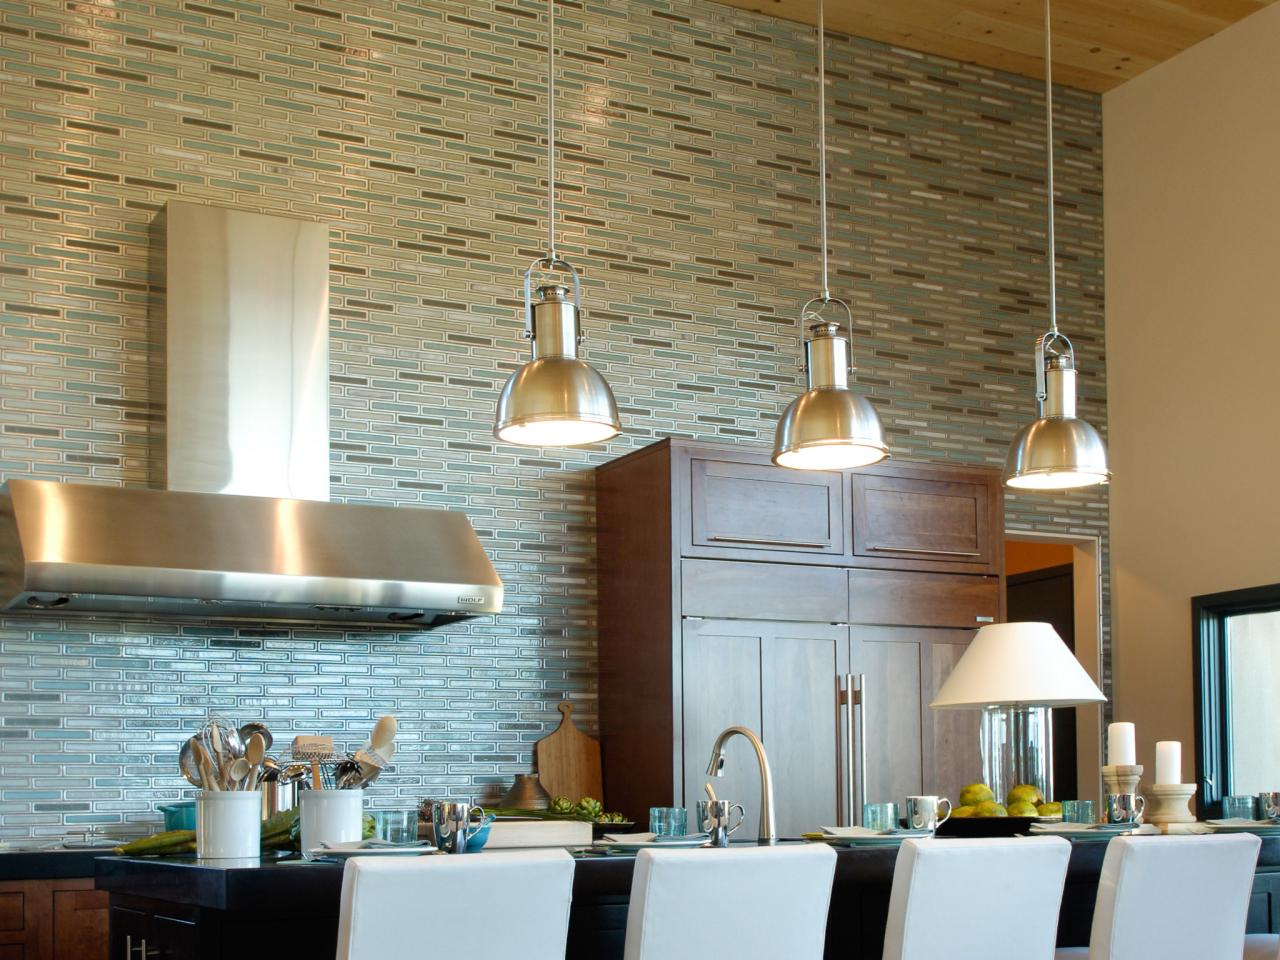 Glossy Ceiling Lamps Installed above Long Black Island and White Stools facing Appealing Kitchen Tile Backsplash